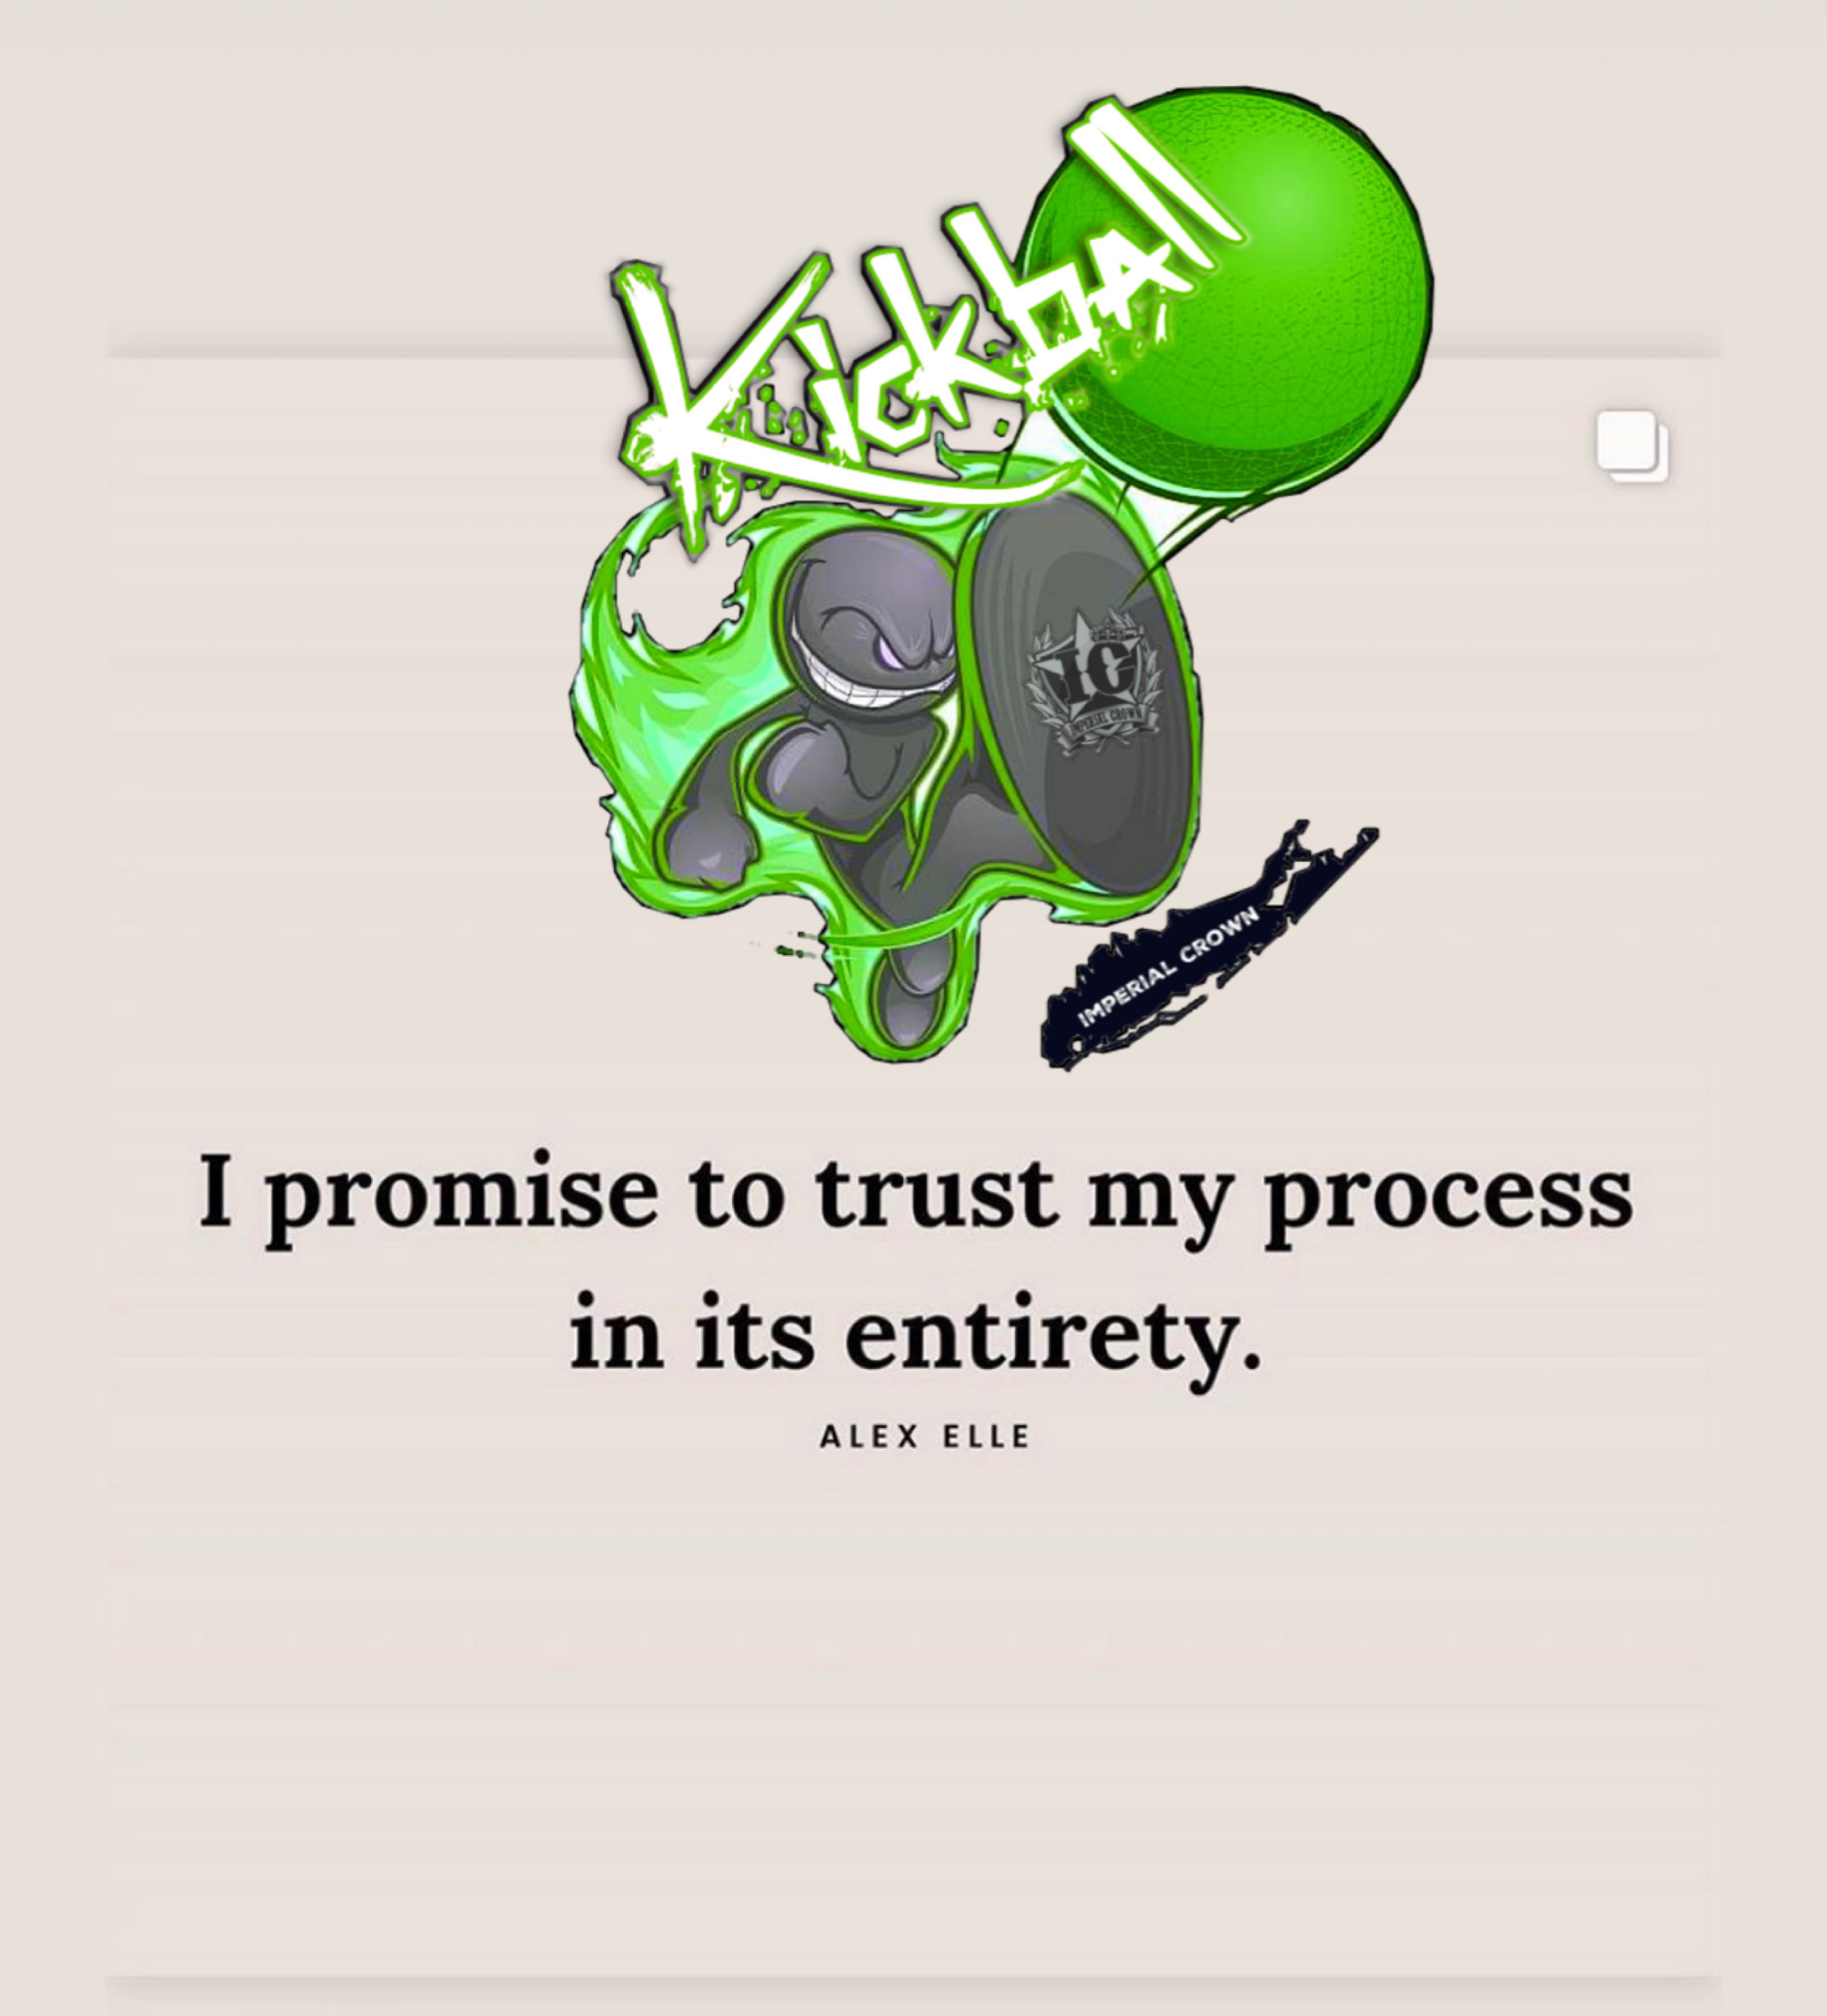 I promise to trust my process in its entirety